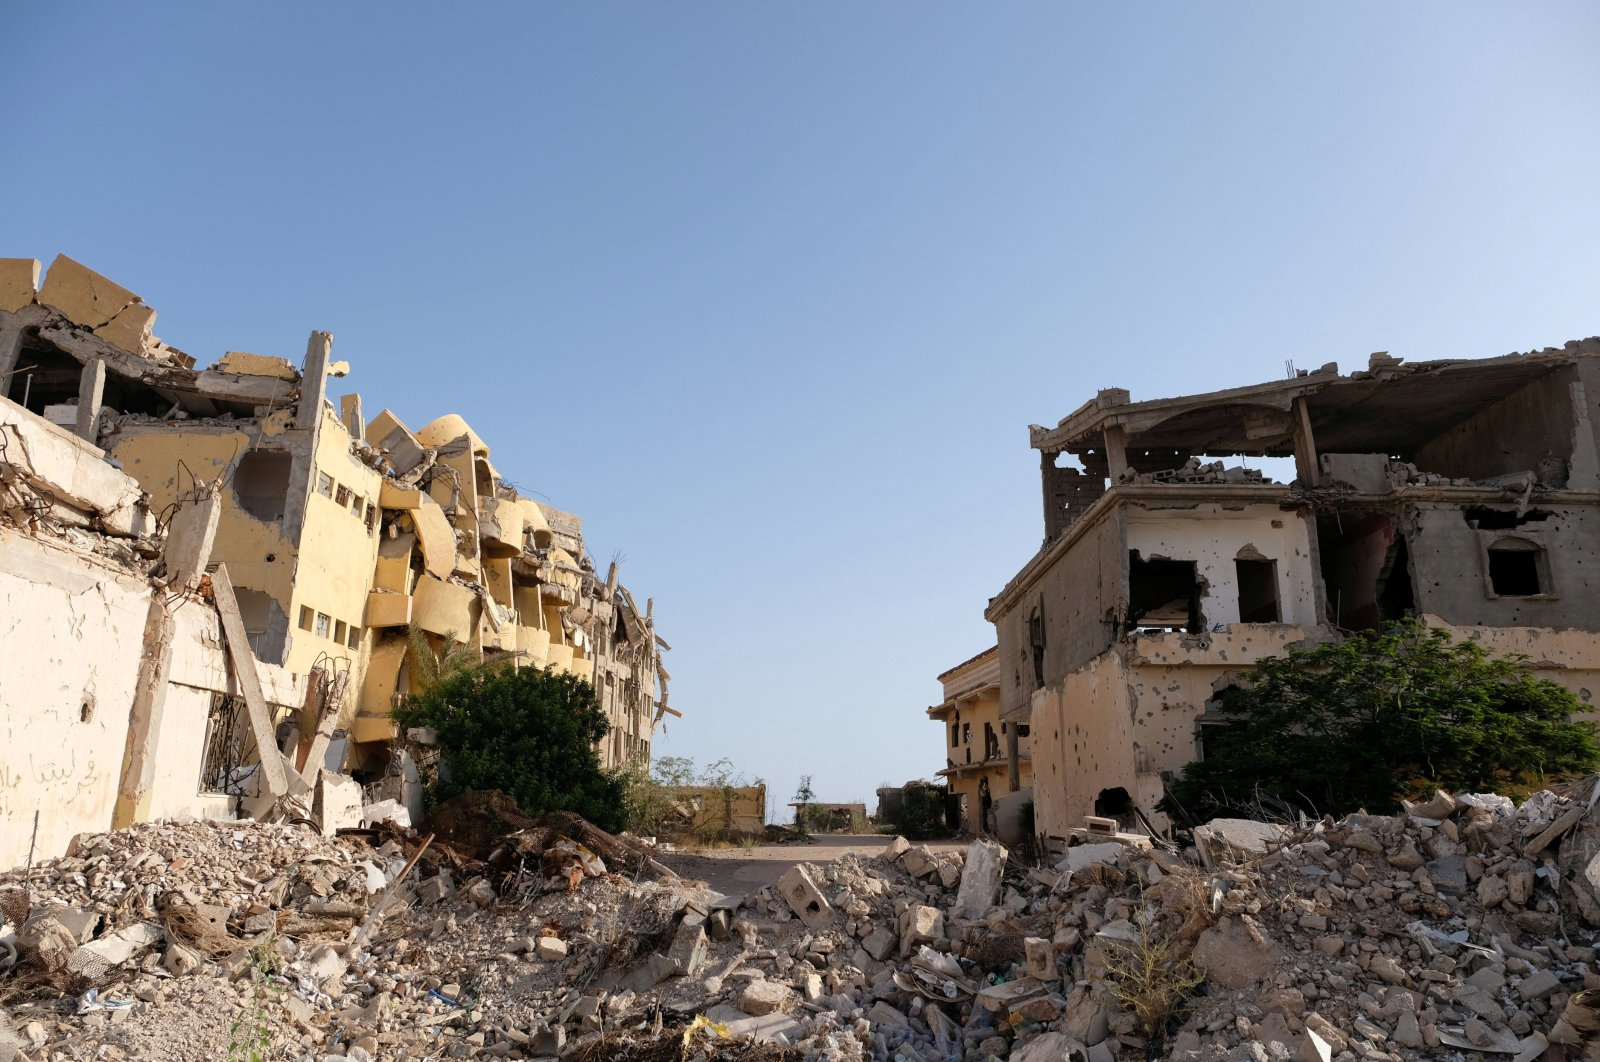 Buildings destroyed during past clashes are seen in Sirte, Libya, Aug. 18, 2020. (REUTERS Photo)